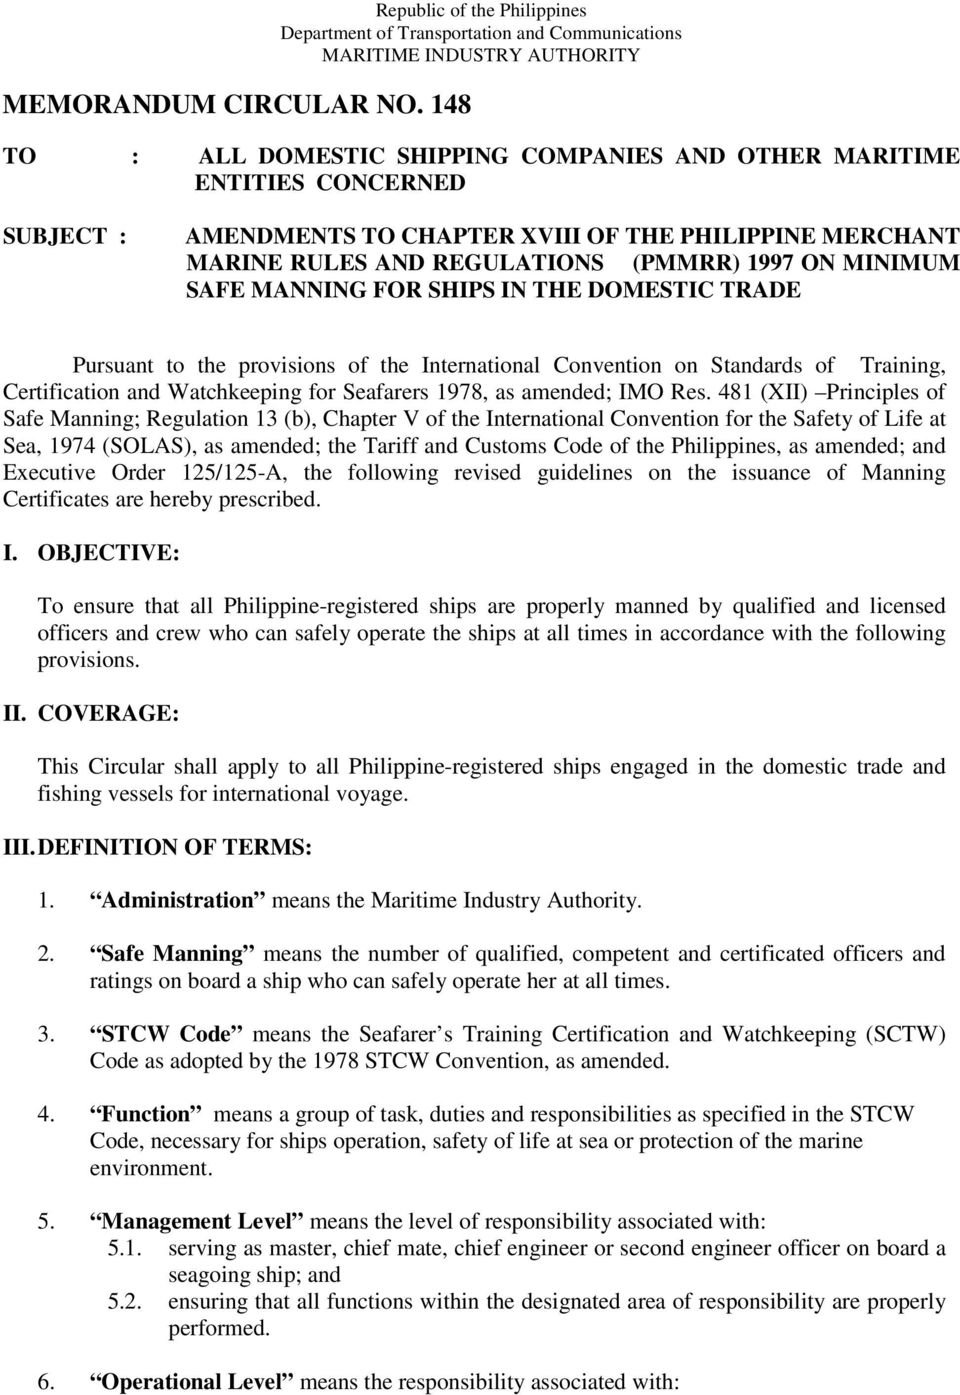 AMENDMENTS TO CHAPTER XVIII OF THE PHILIPPINE MERCHANT MARINE RULES AND REGULATIONS (PMMRR) 997 ON MINIMUM SAFE MANNING FOR SHIPS IN THE DOMESTIC TRADE Pursuant to the provisions of the International